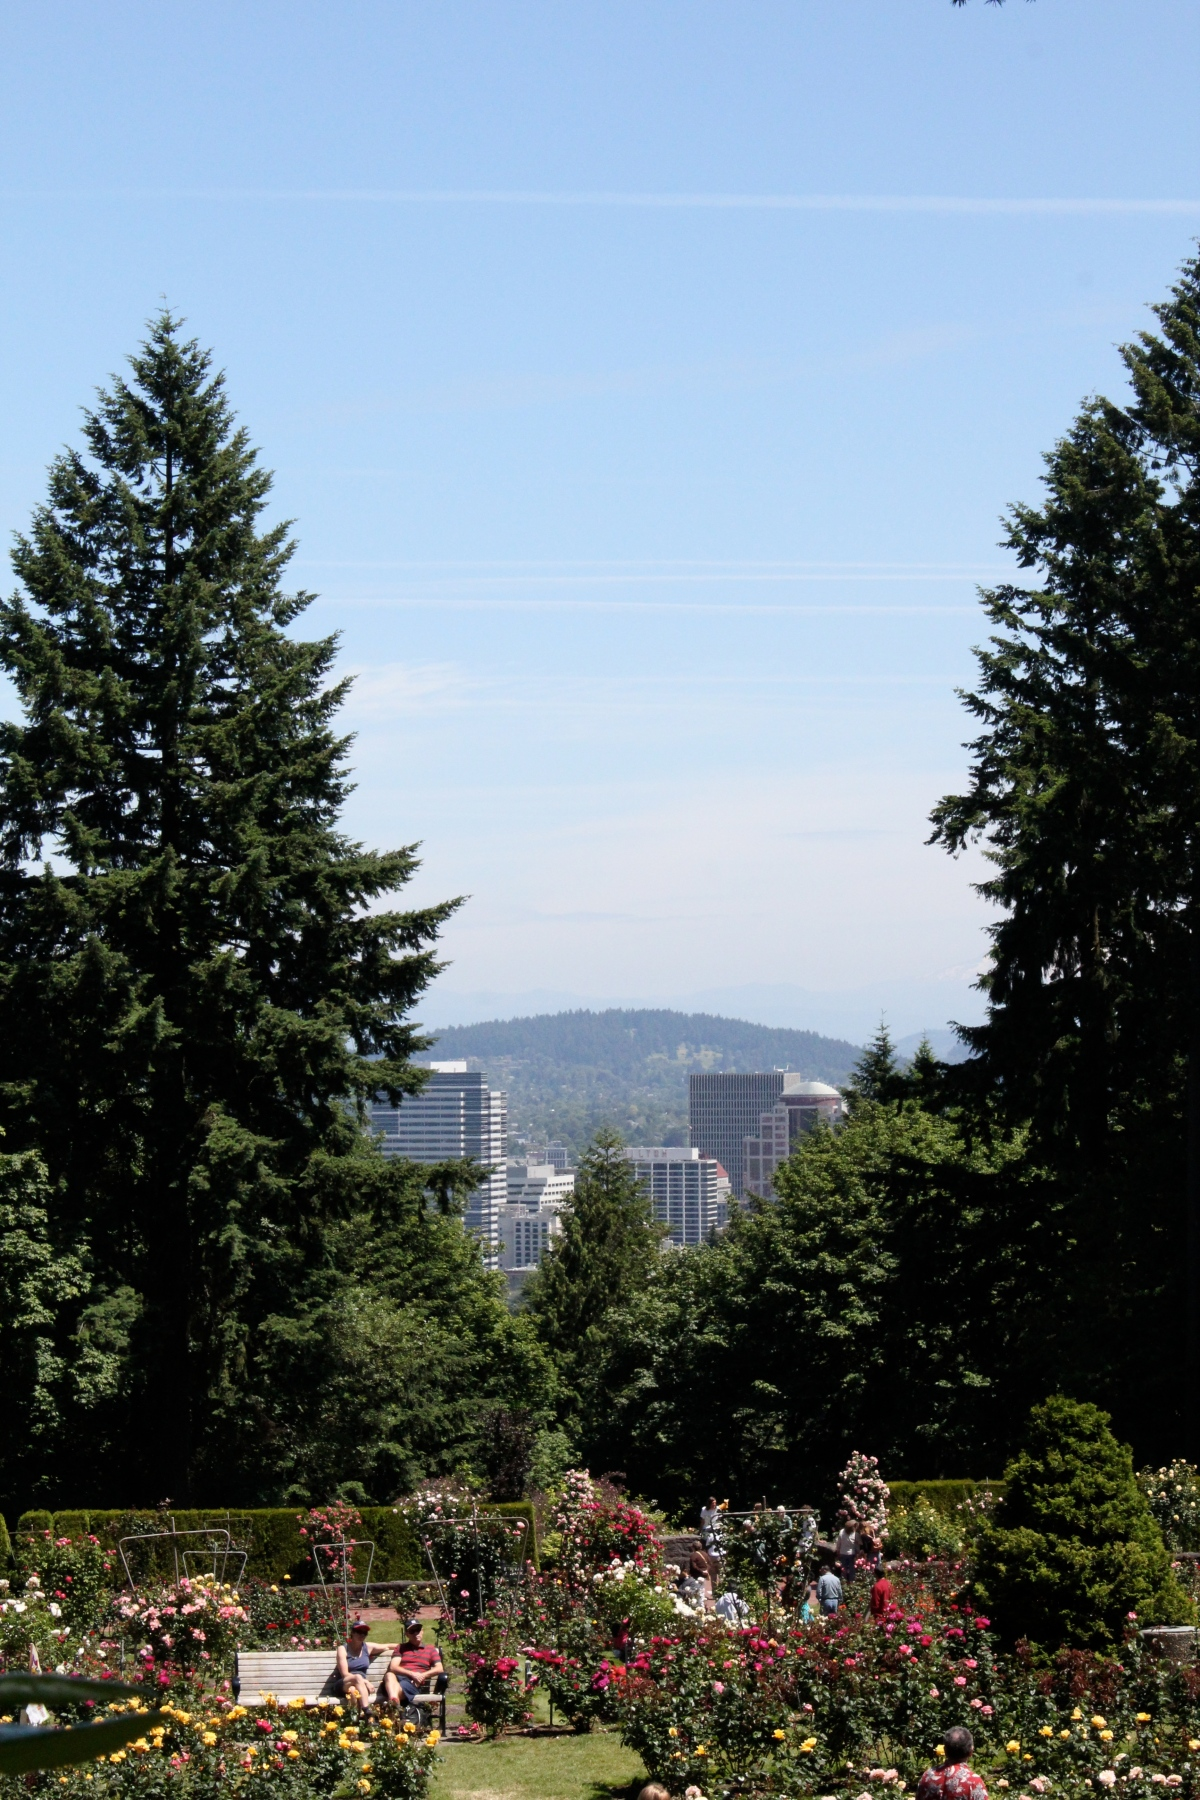 View of downtown Portland from Washington Park